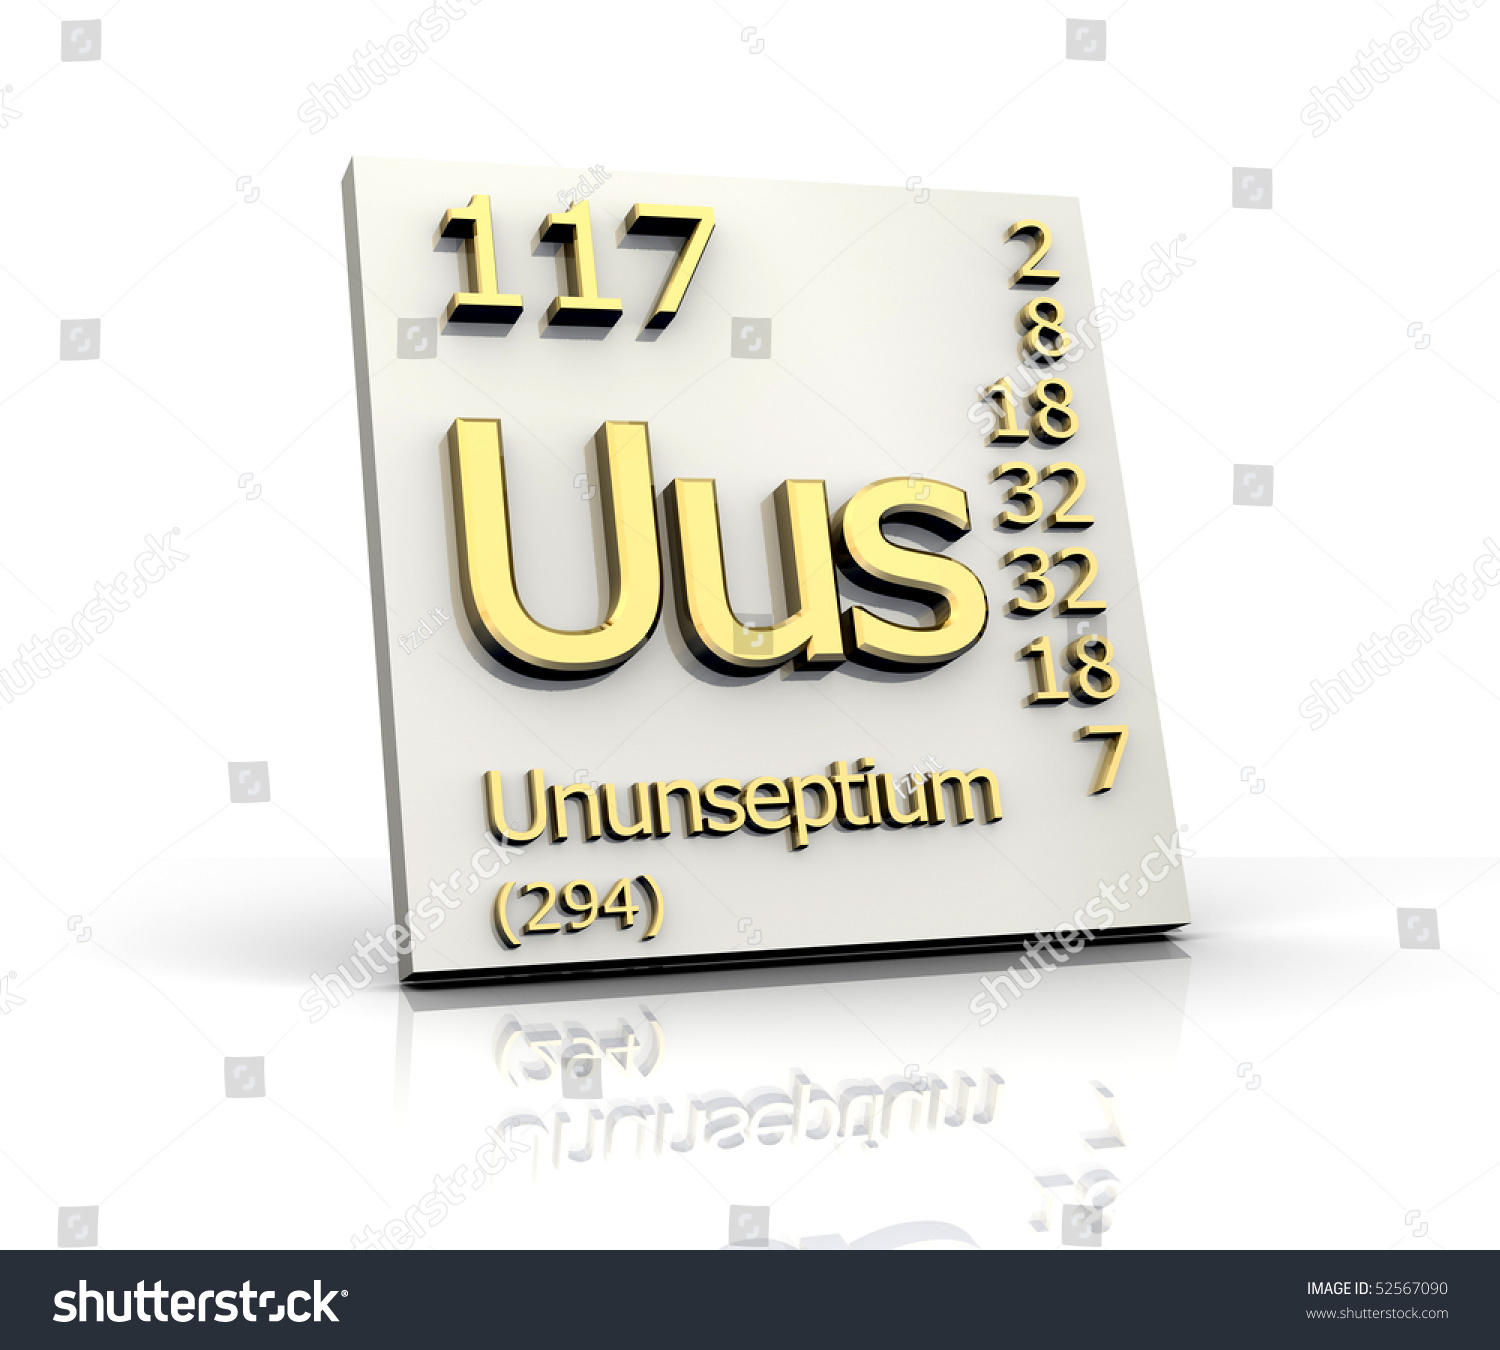 Ununseptium From Periodic Table Of Elements Stock Photo ...